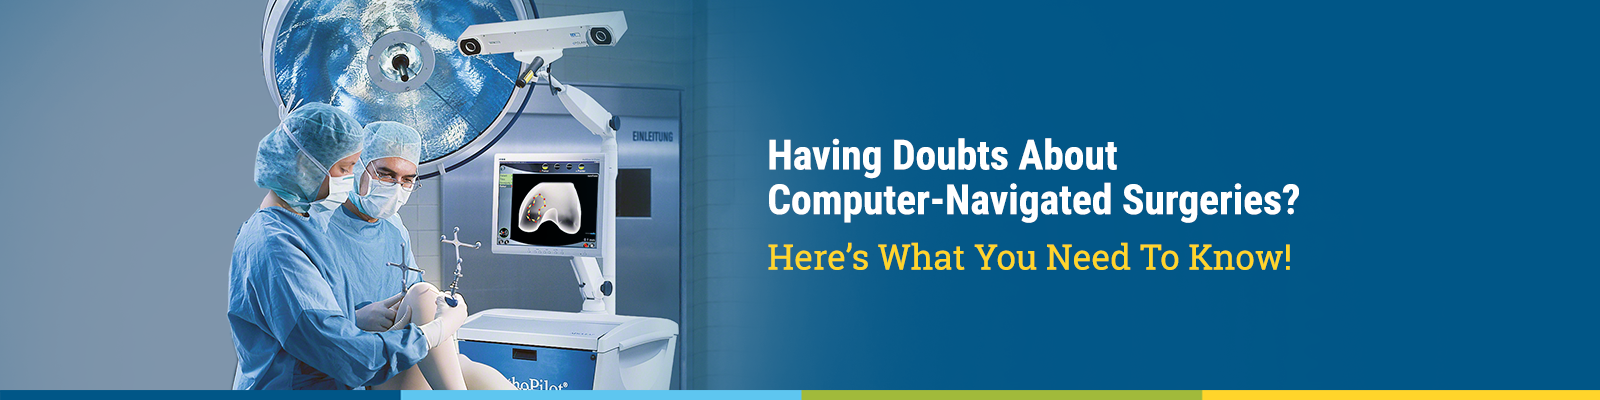 Having Doubts About Computer-Navigated Surgeries?  Here's What You Need To Know!